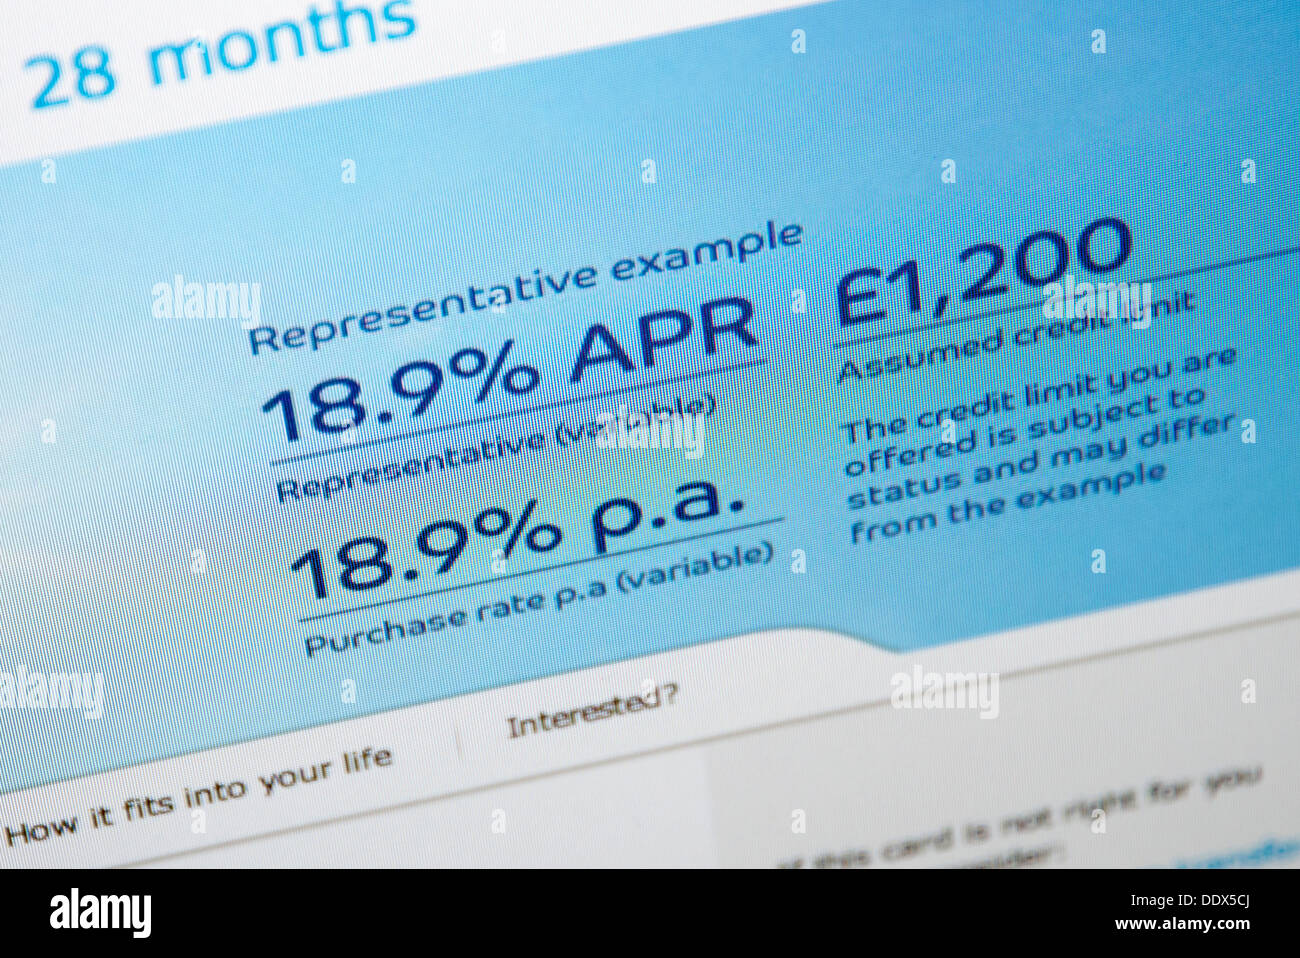 website with interest rates 18.9% online loans - Stock Image